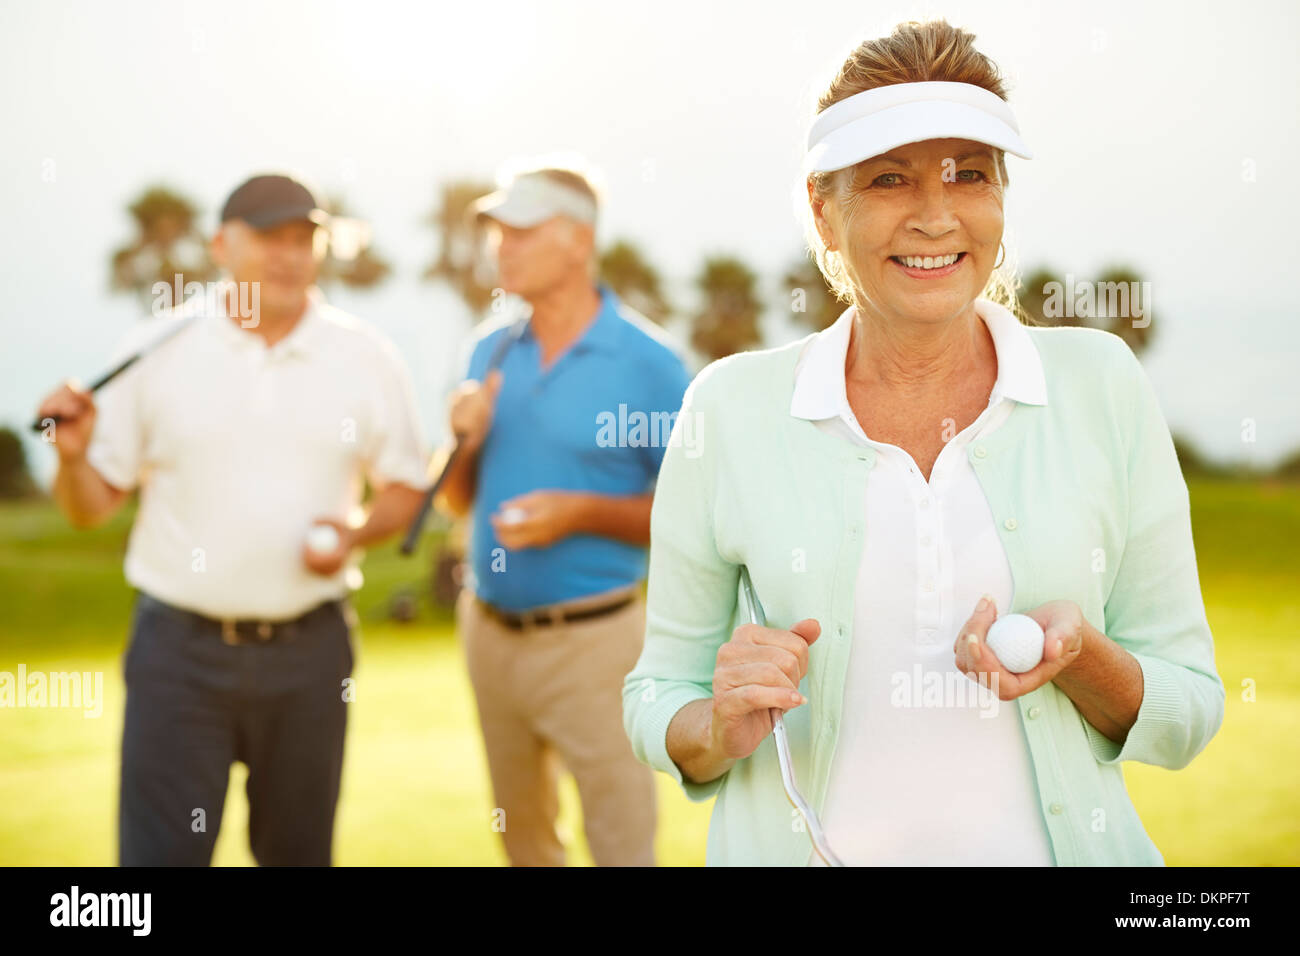 Friends on golf course Photo Stock